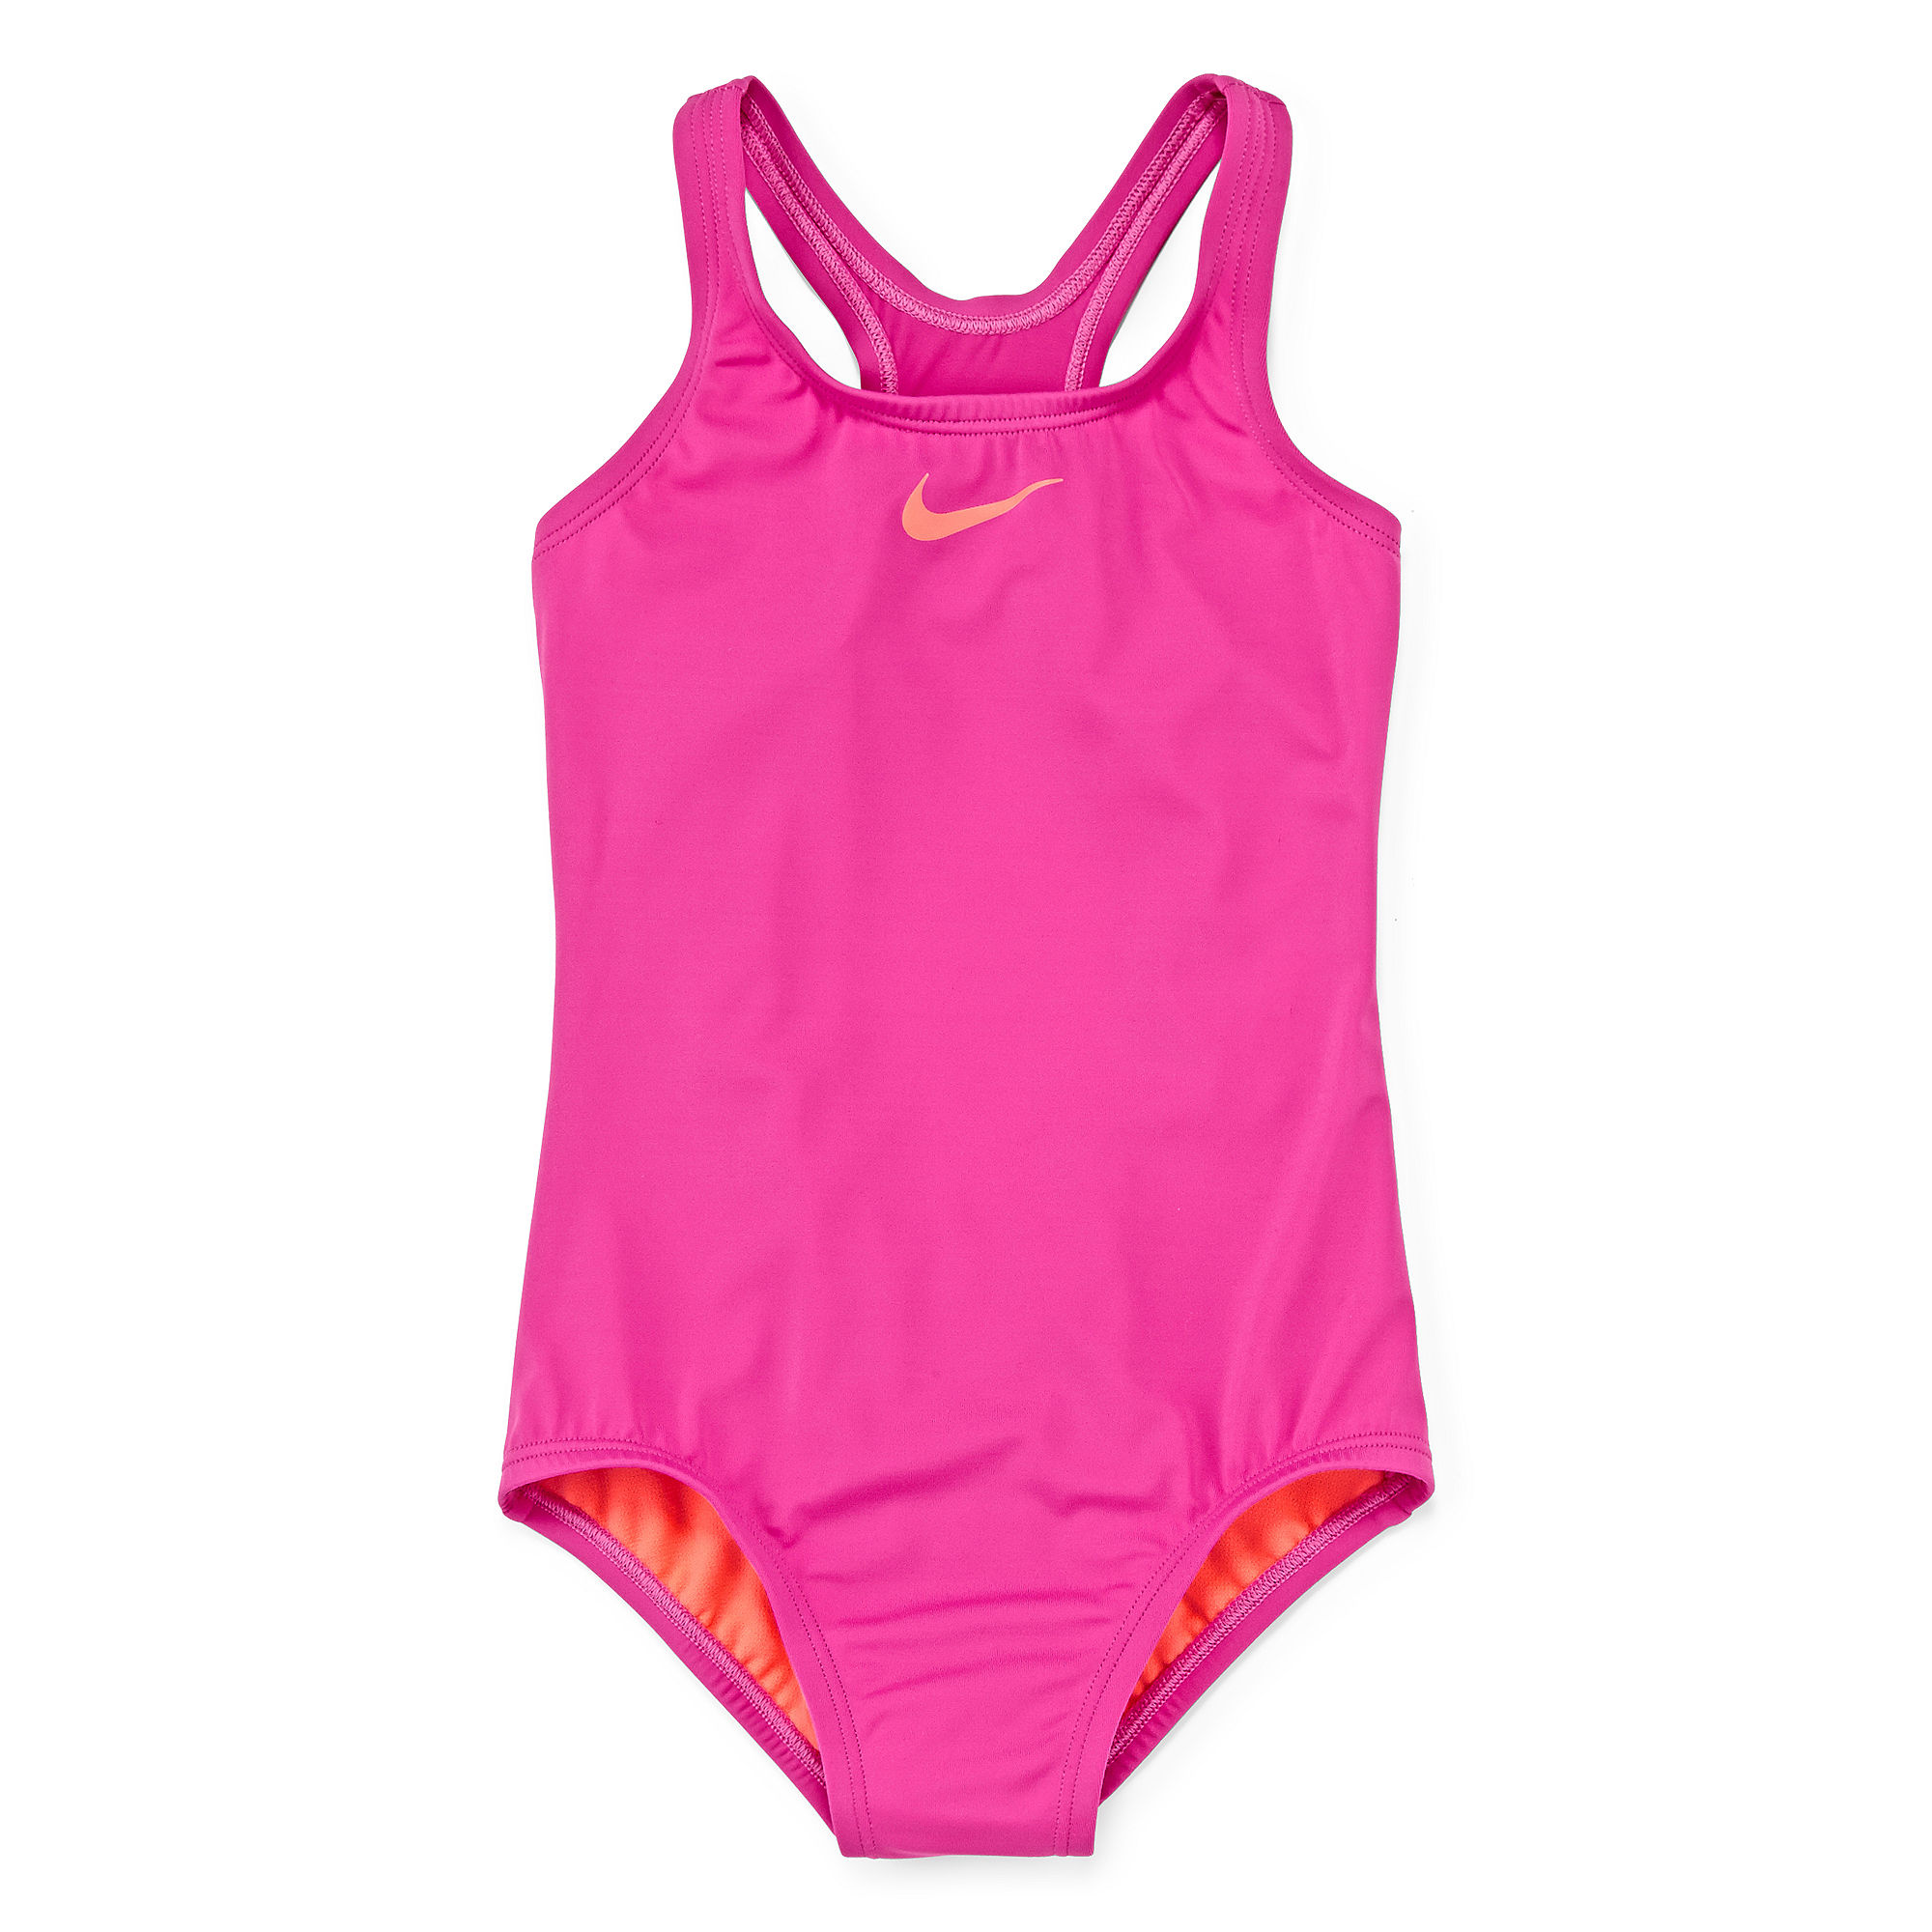 87b23803e6 ... UPC 053474733998 product image for Nike Solid Racerback One-Piece  Swimsuit - Girls 7- ...